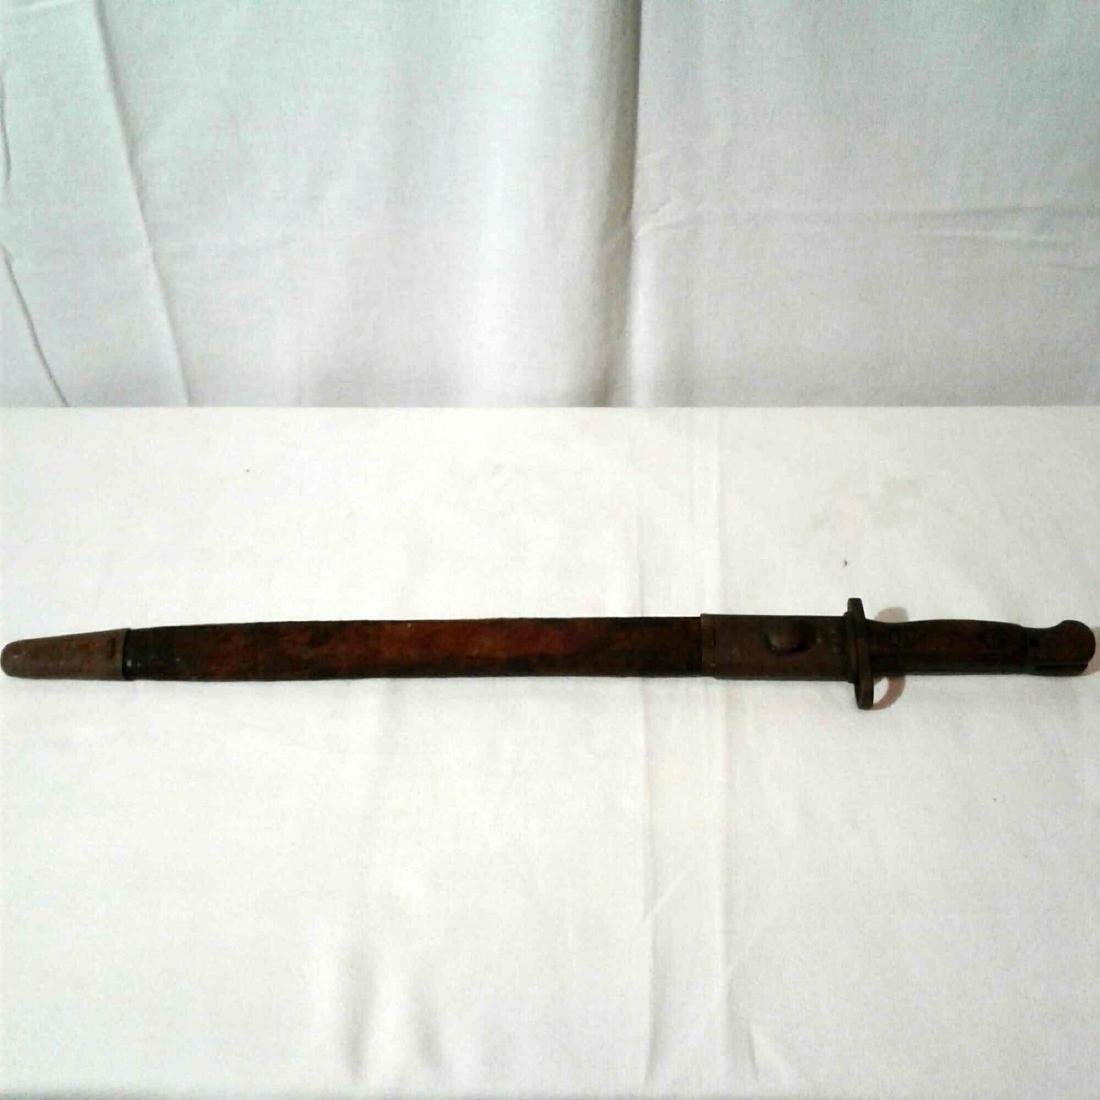 British India Bayonet 1941 No.1 Mk. 1 Enfield SMLE